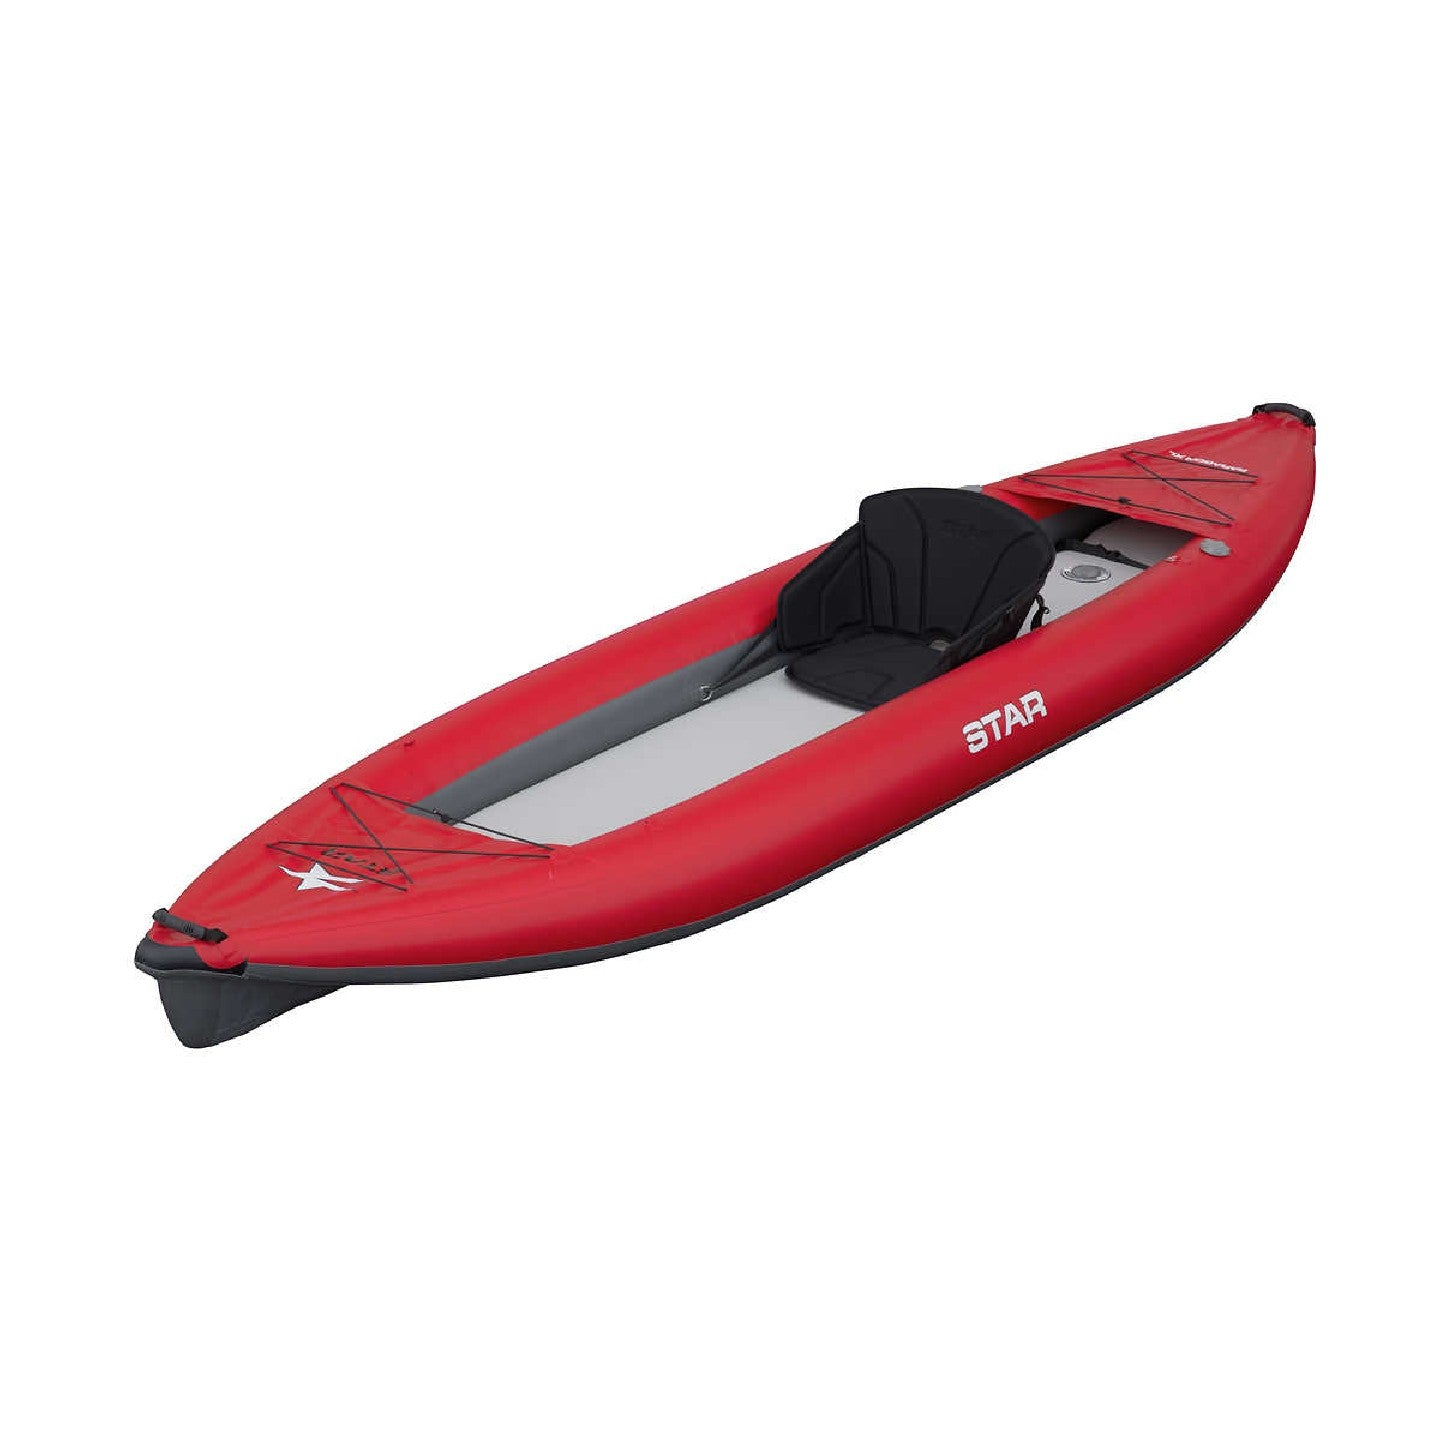 STAR Paragon XL Inflatable Kayak from NRS - Kayak Creek